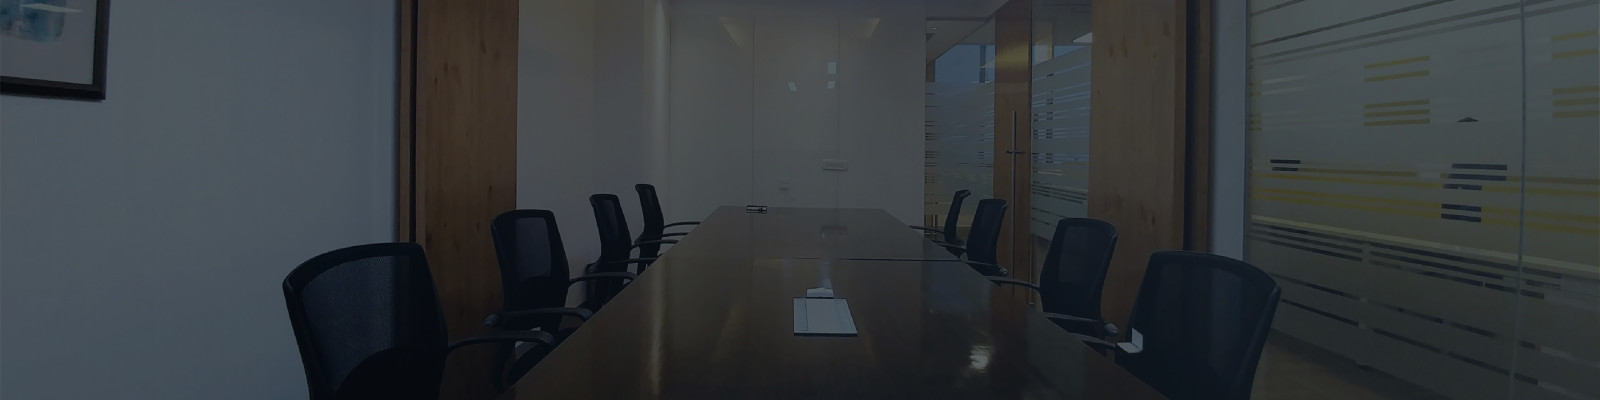 Meeting Rooms by InstaOffice